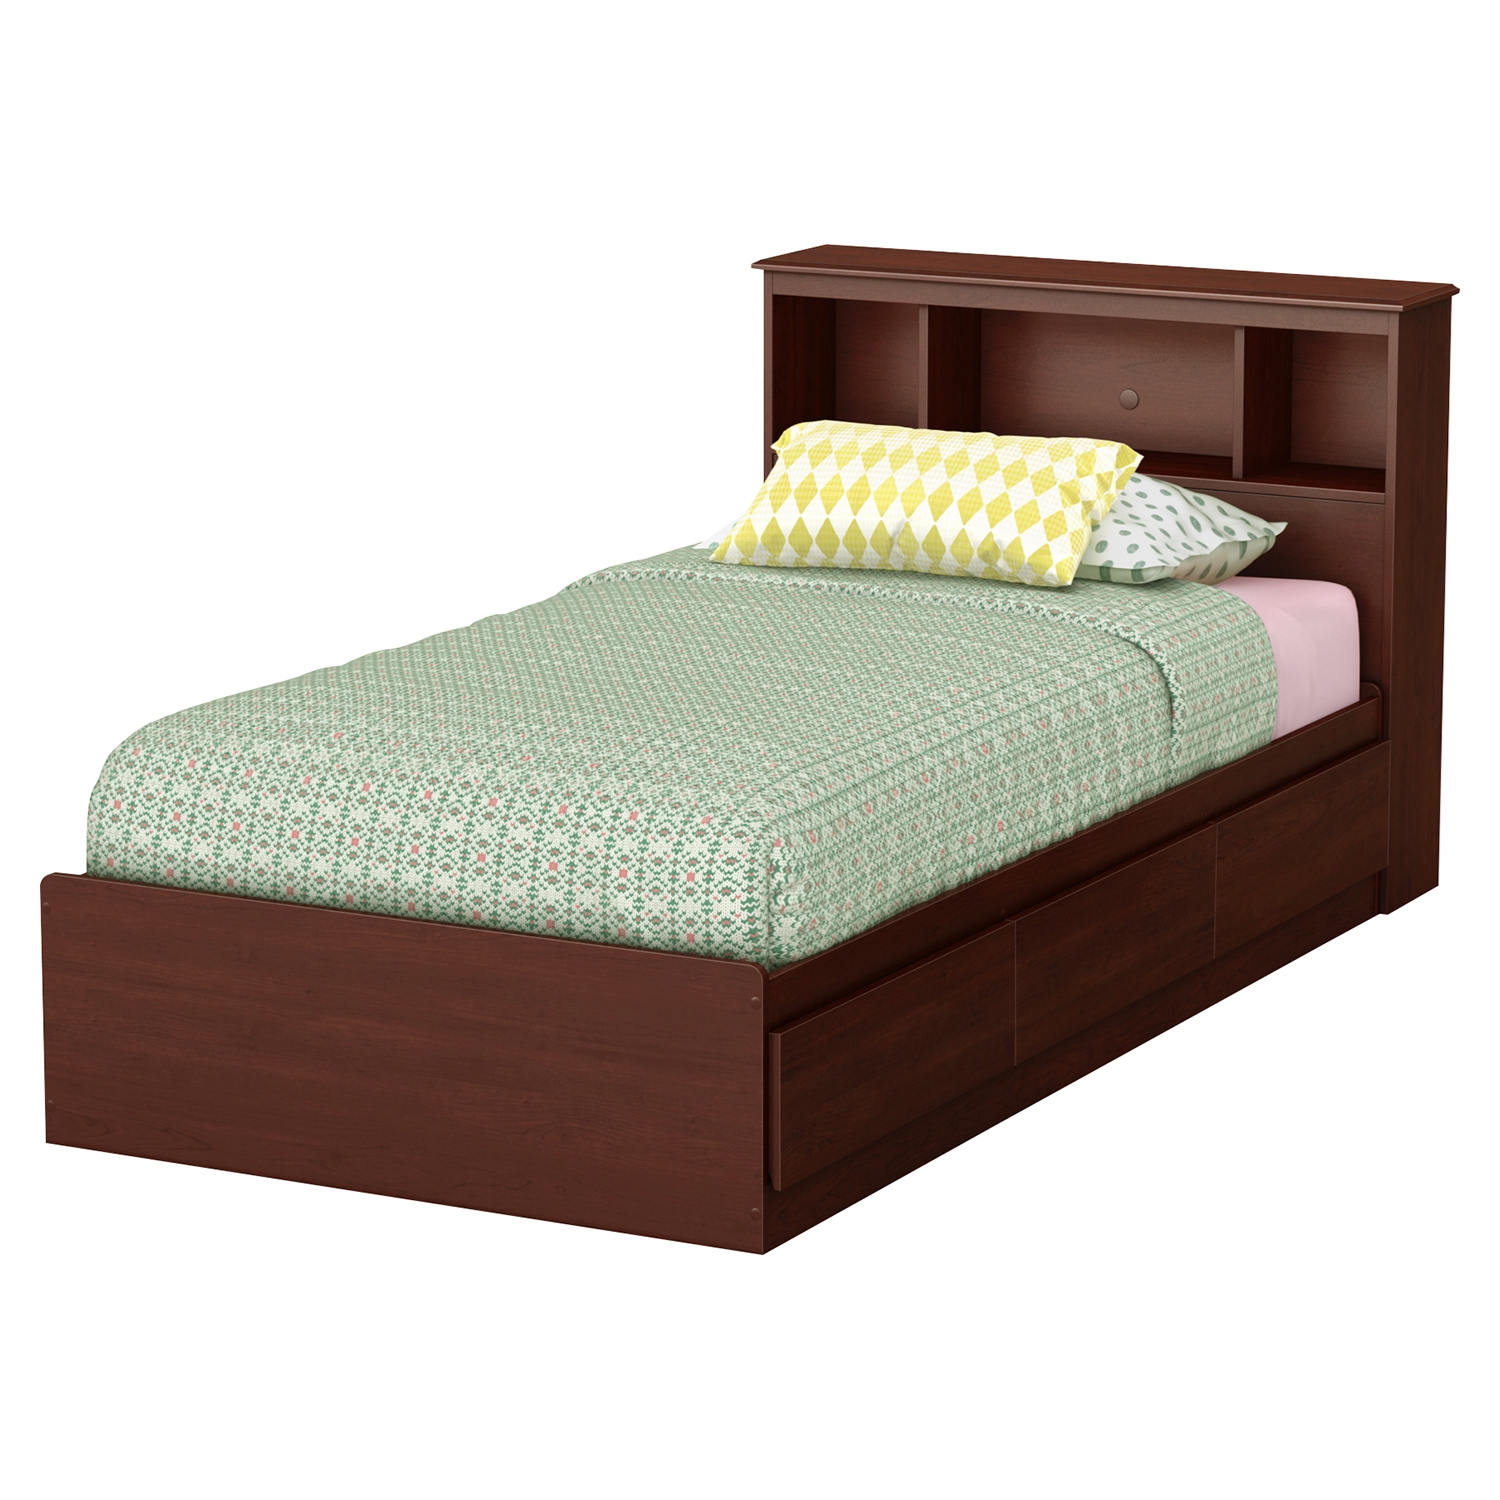 Little Treasures 3 Drawer Twin Mates Bed - Bookcase Headboard, Royal Cherry